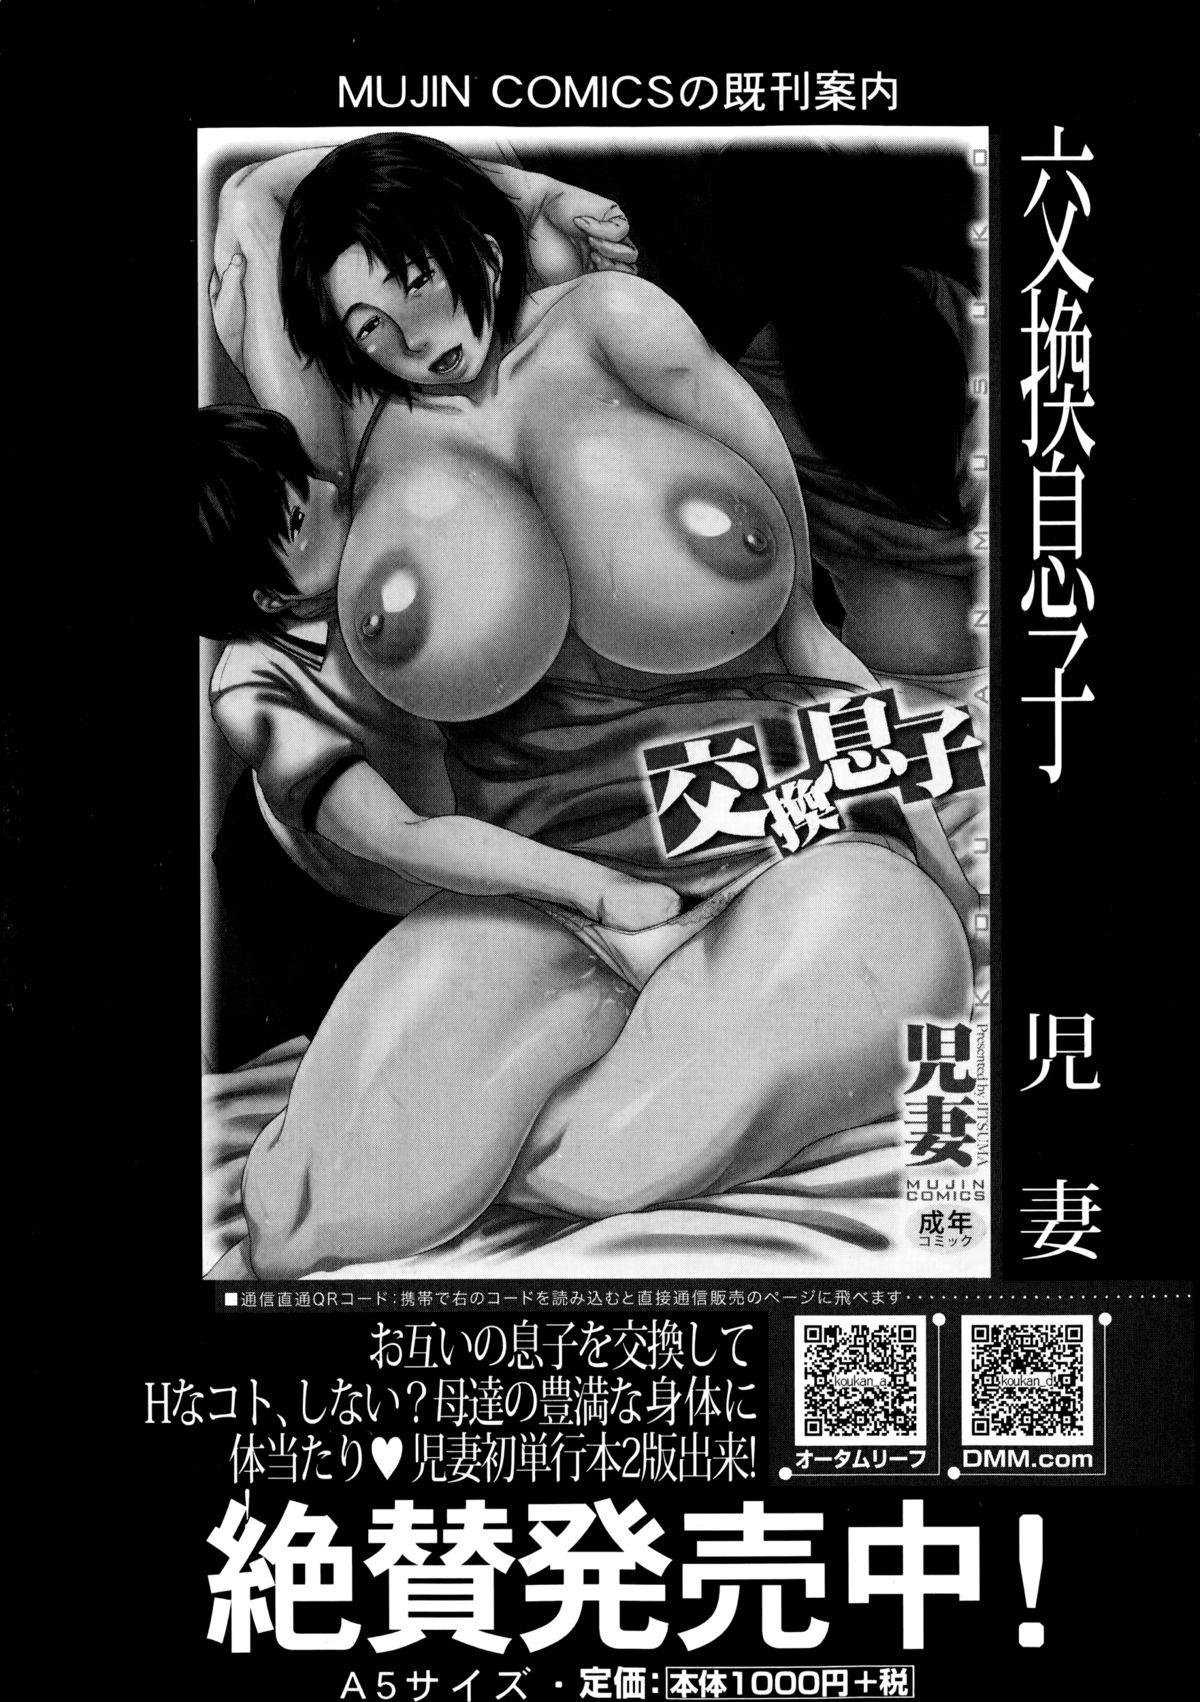 BUSTER COMIC 2014-09 366